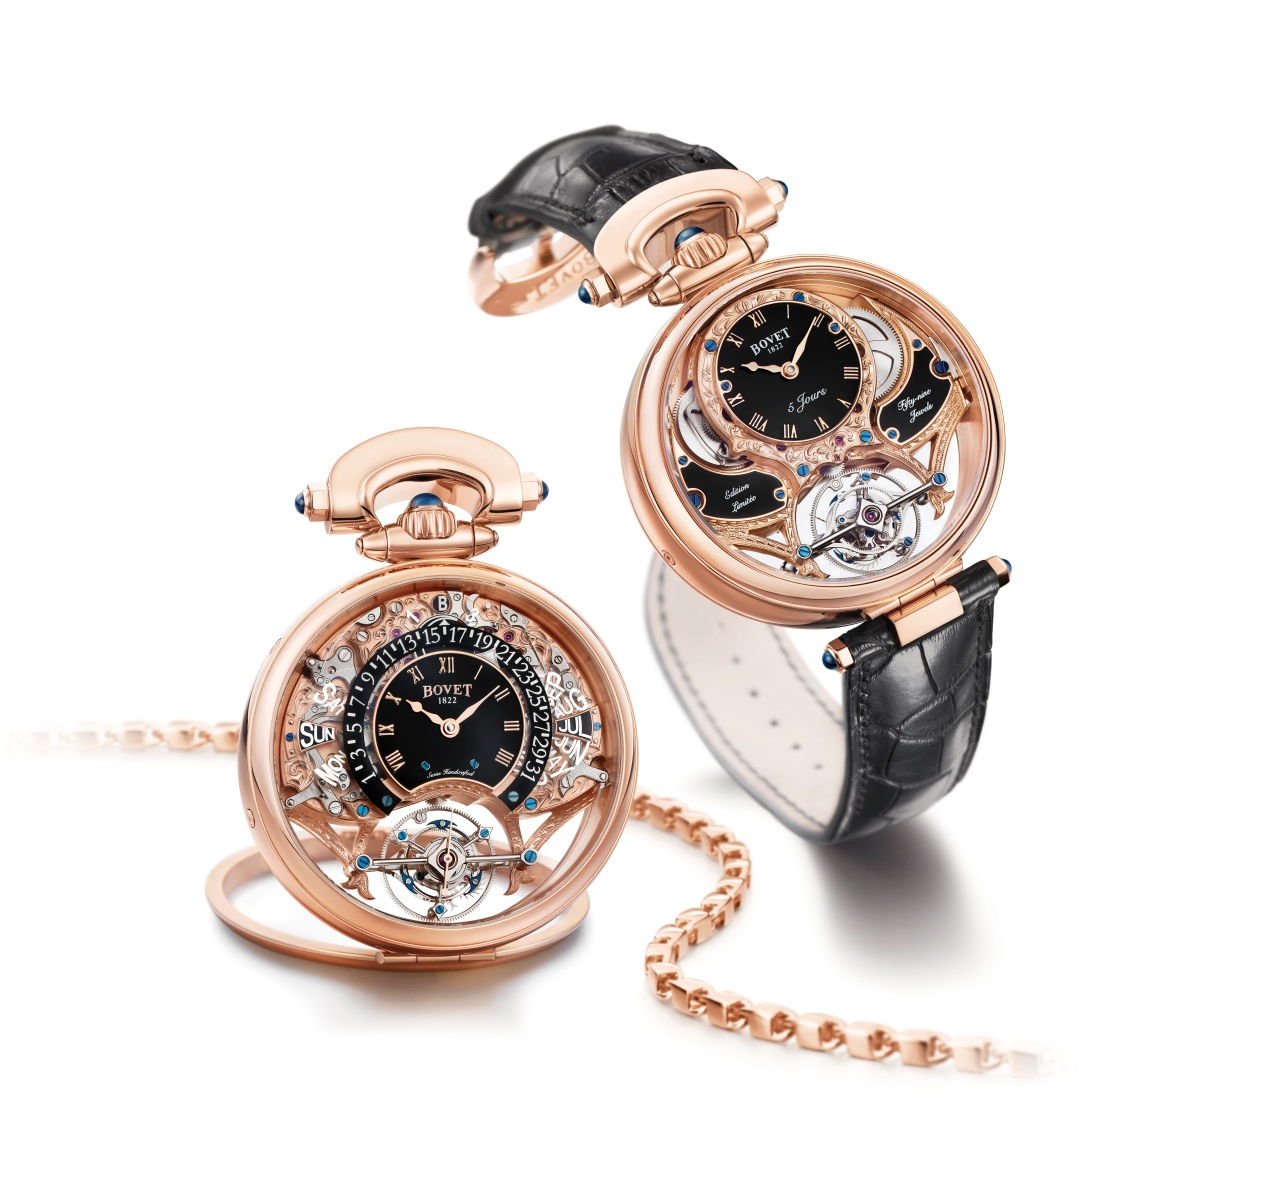 Bovet Watch   Amadeo Fleurier Grandes Complications   Ref. Nr.  AIQPR003    Call 312-944-3100  | For Availability